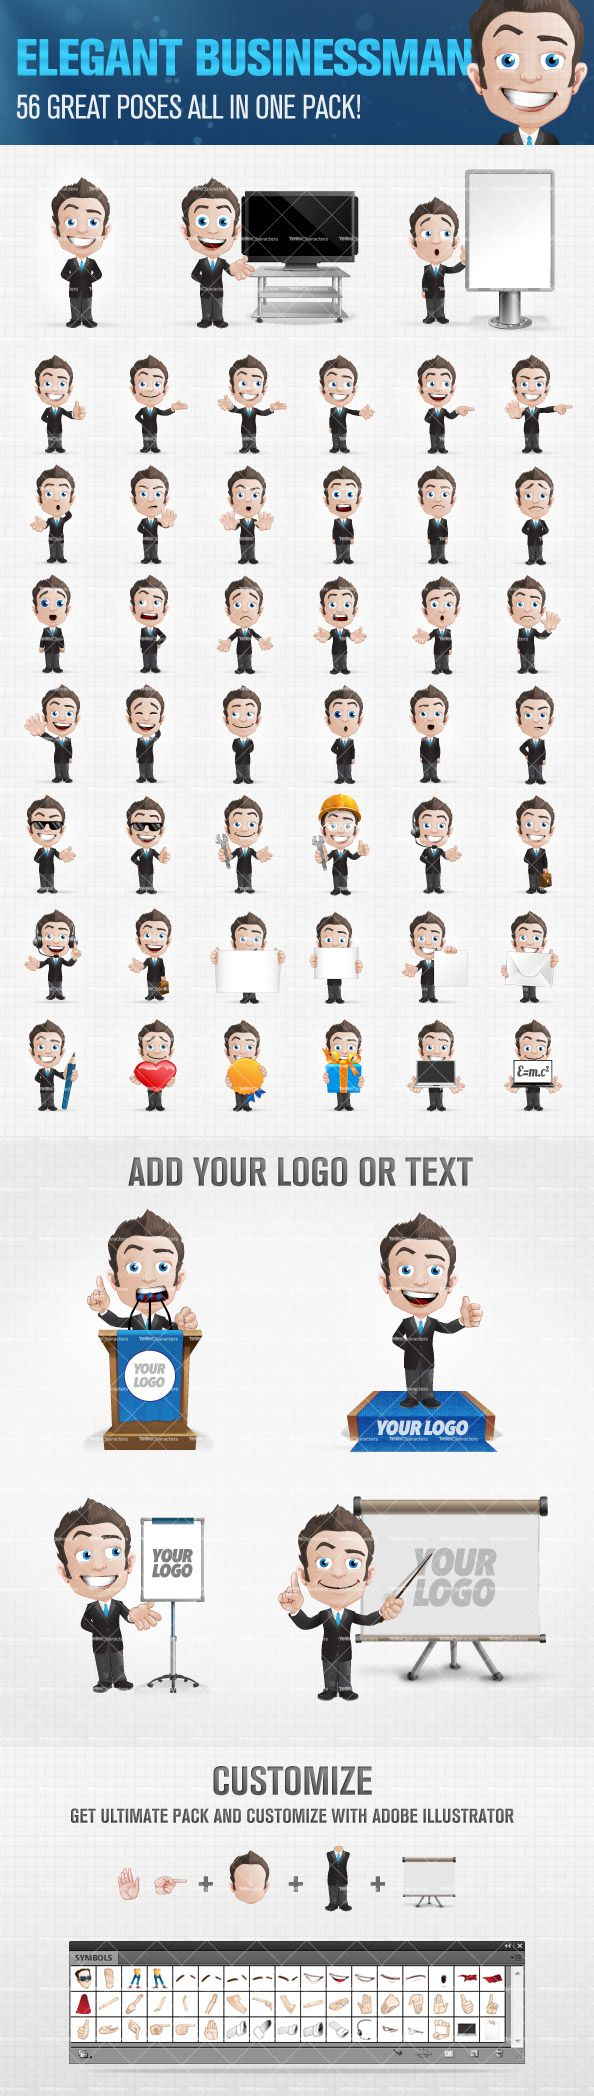 Business team cartoon characters cartoon vector cartoondealer com - Businessman Cartoon Character Set Containing The Impressive Amount Of 56 Different Poses And Emotions We